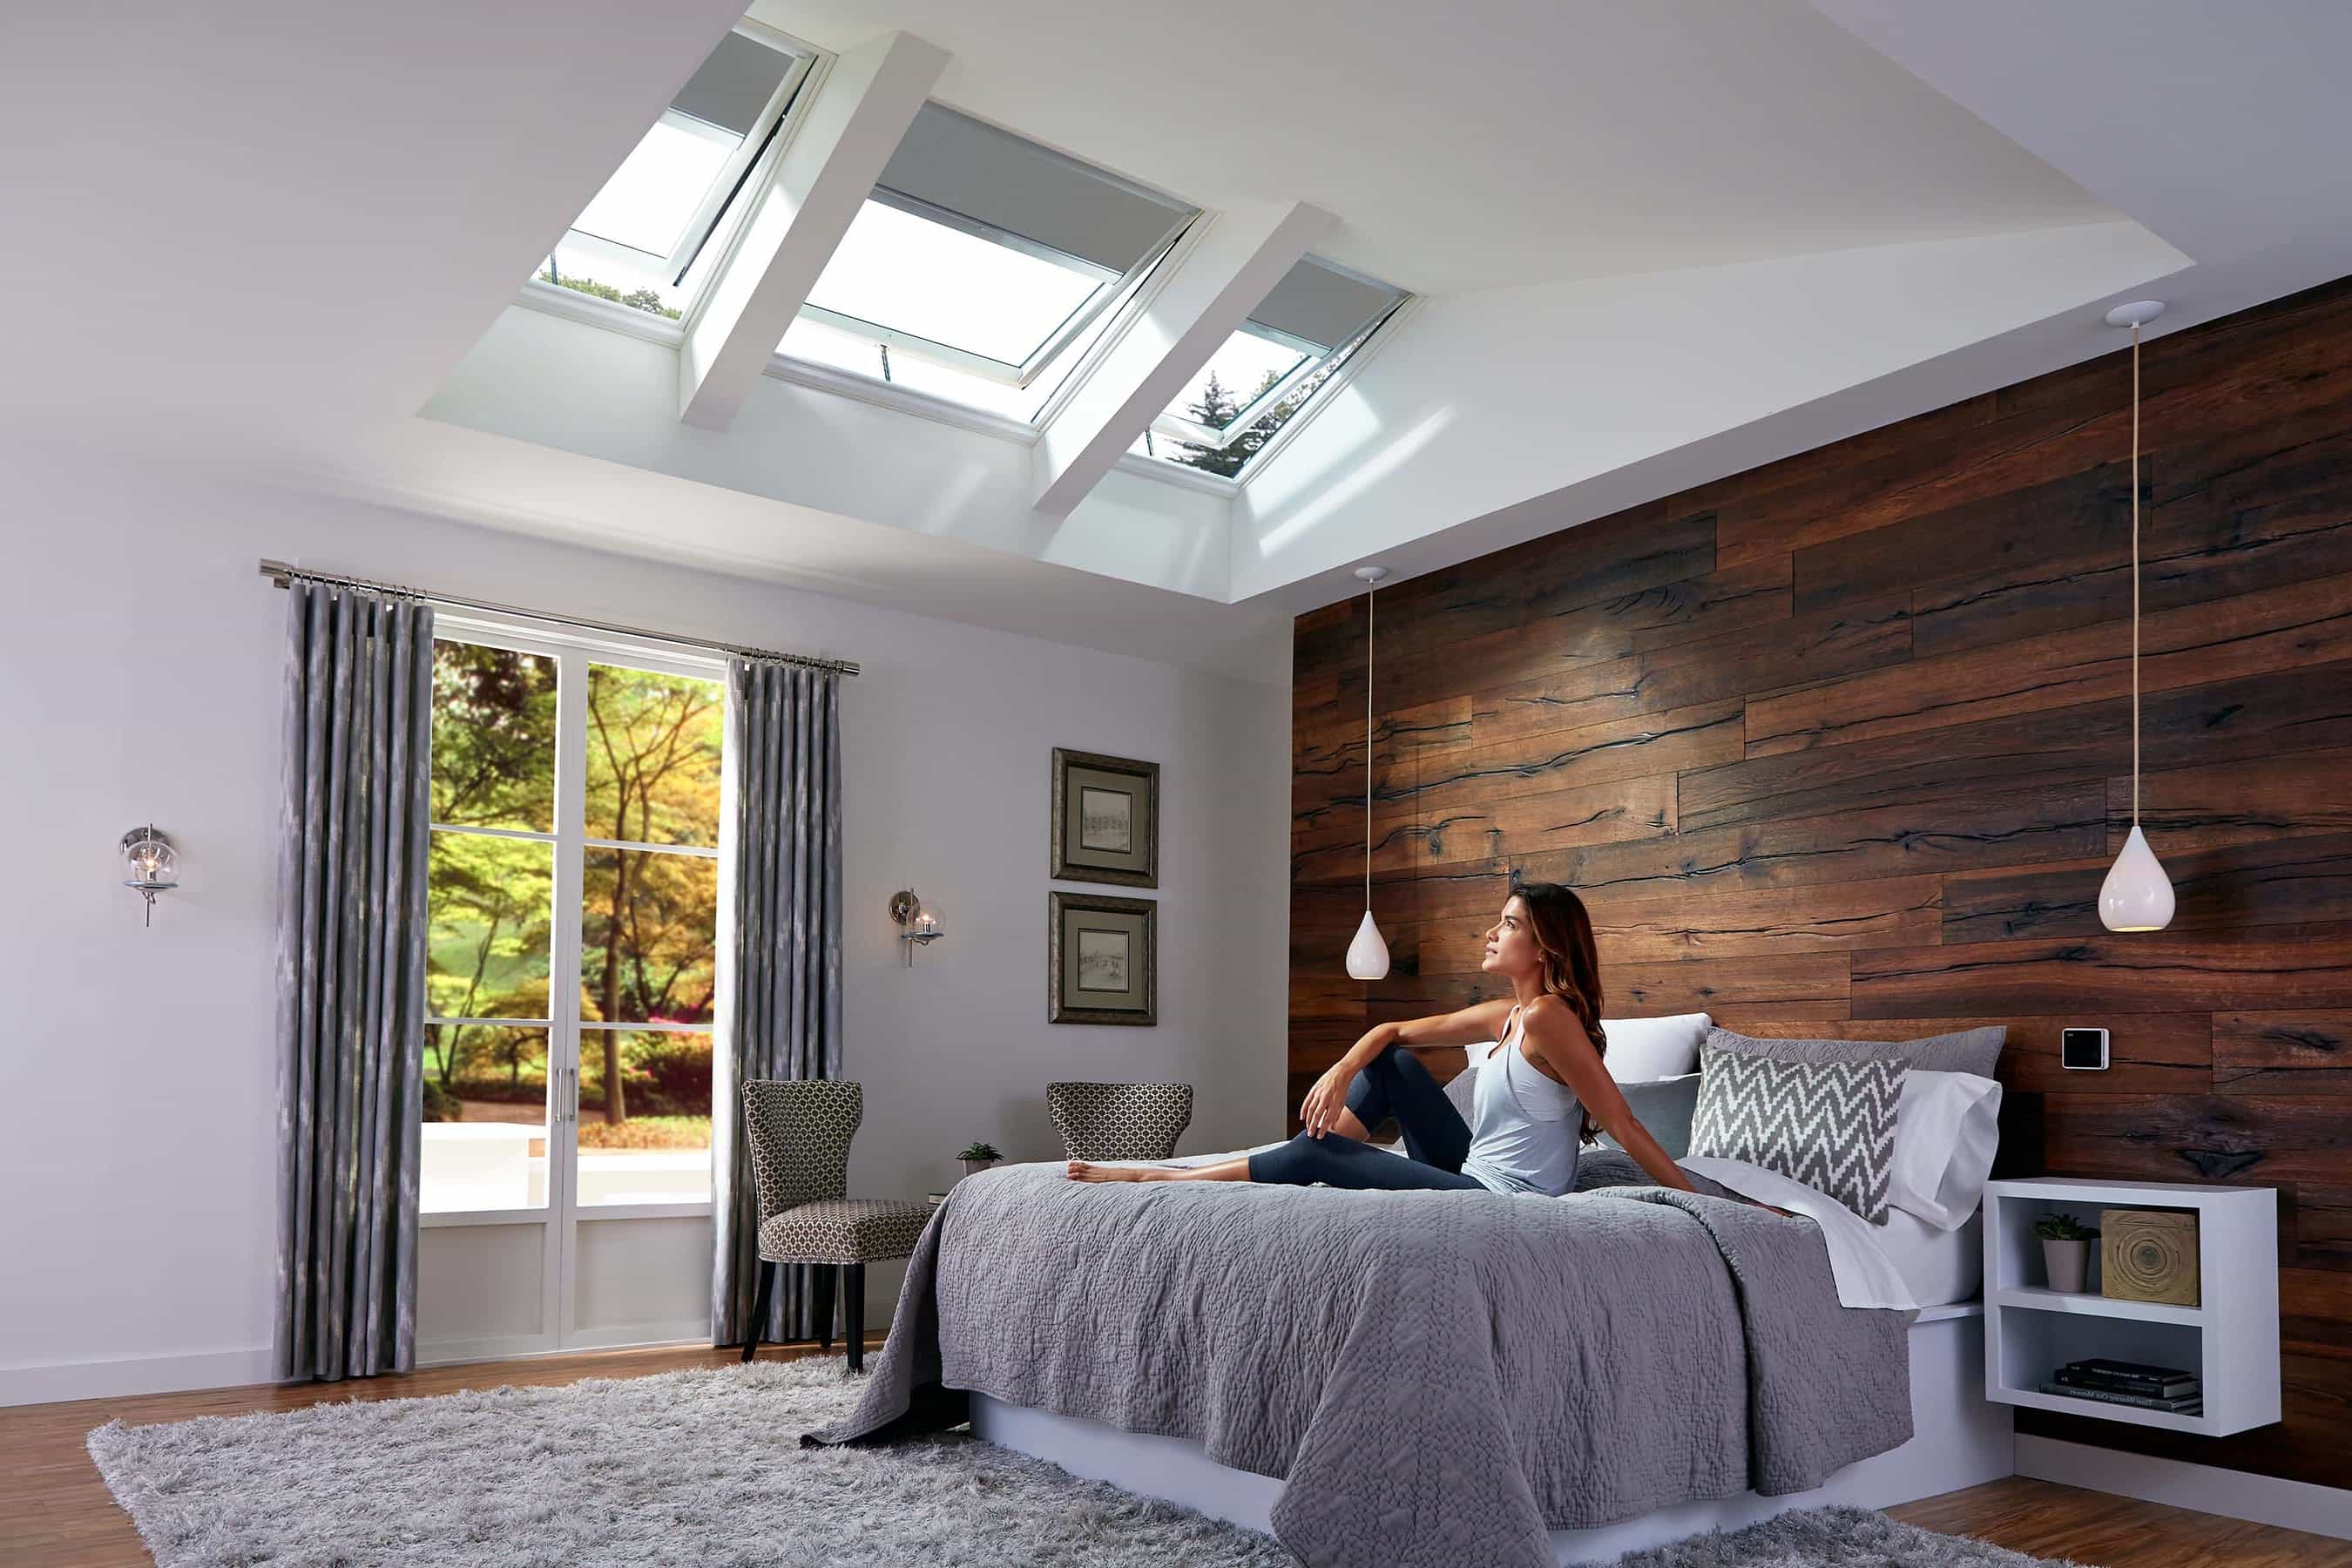 25 best skylights blinds and shades ideas 22172 tips ideas for Bedroom skylight